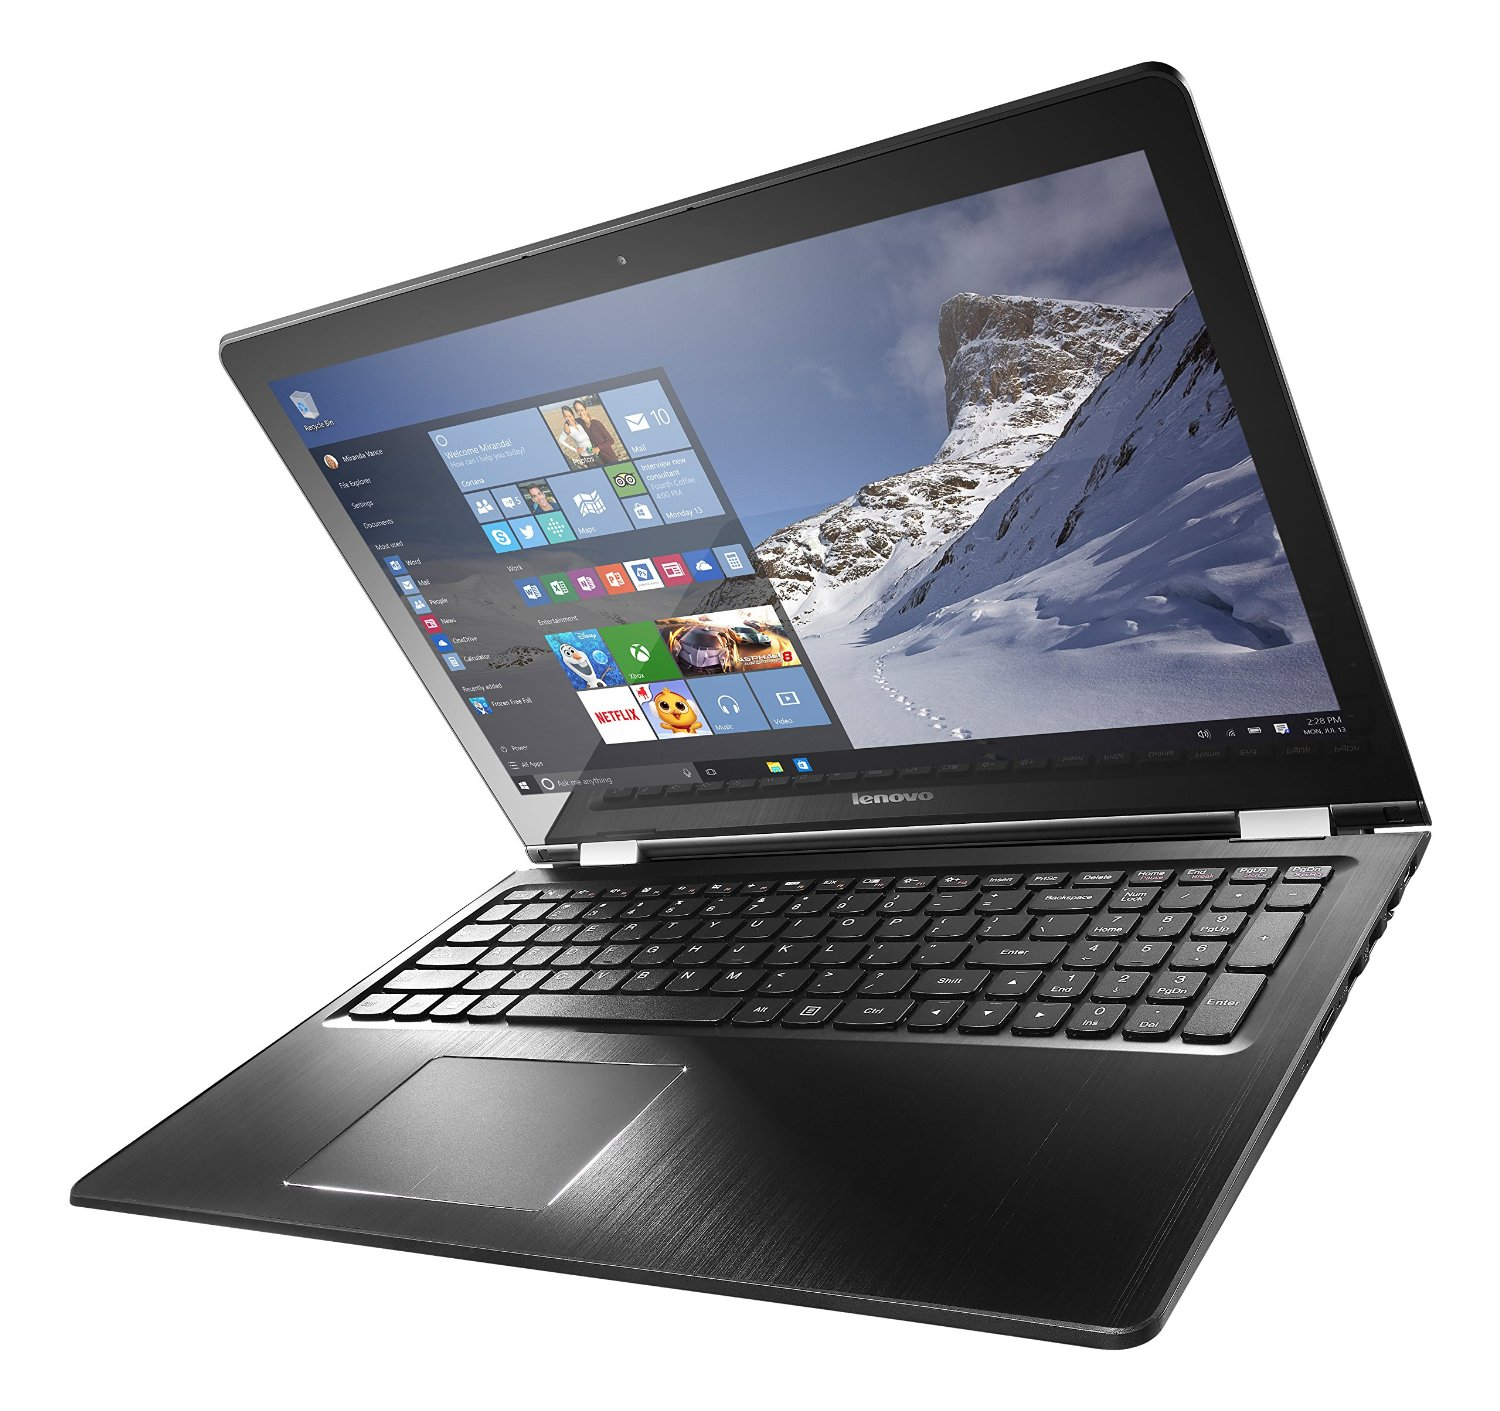 Lenovo Flex 3 15.6-Inch Touchscreen Laptop (Core i7, 8 GB RAM, 1 TB HDD, Windows 10) 80R40006US